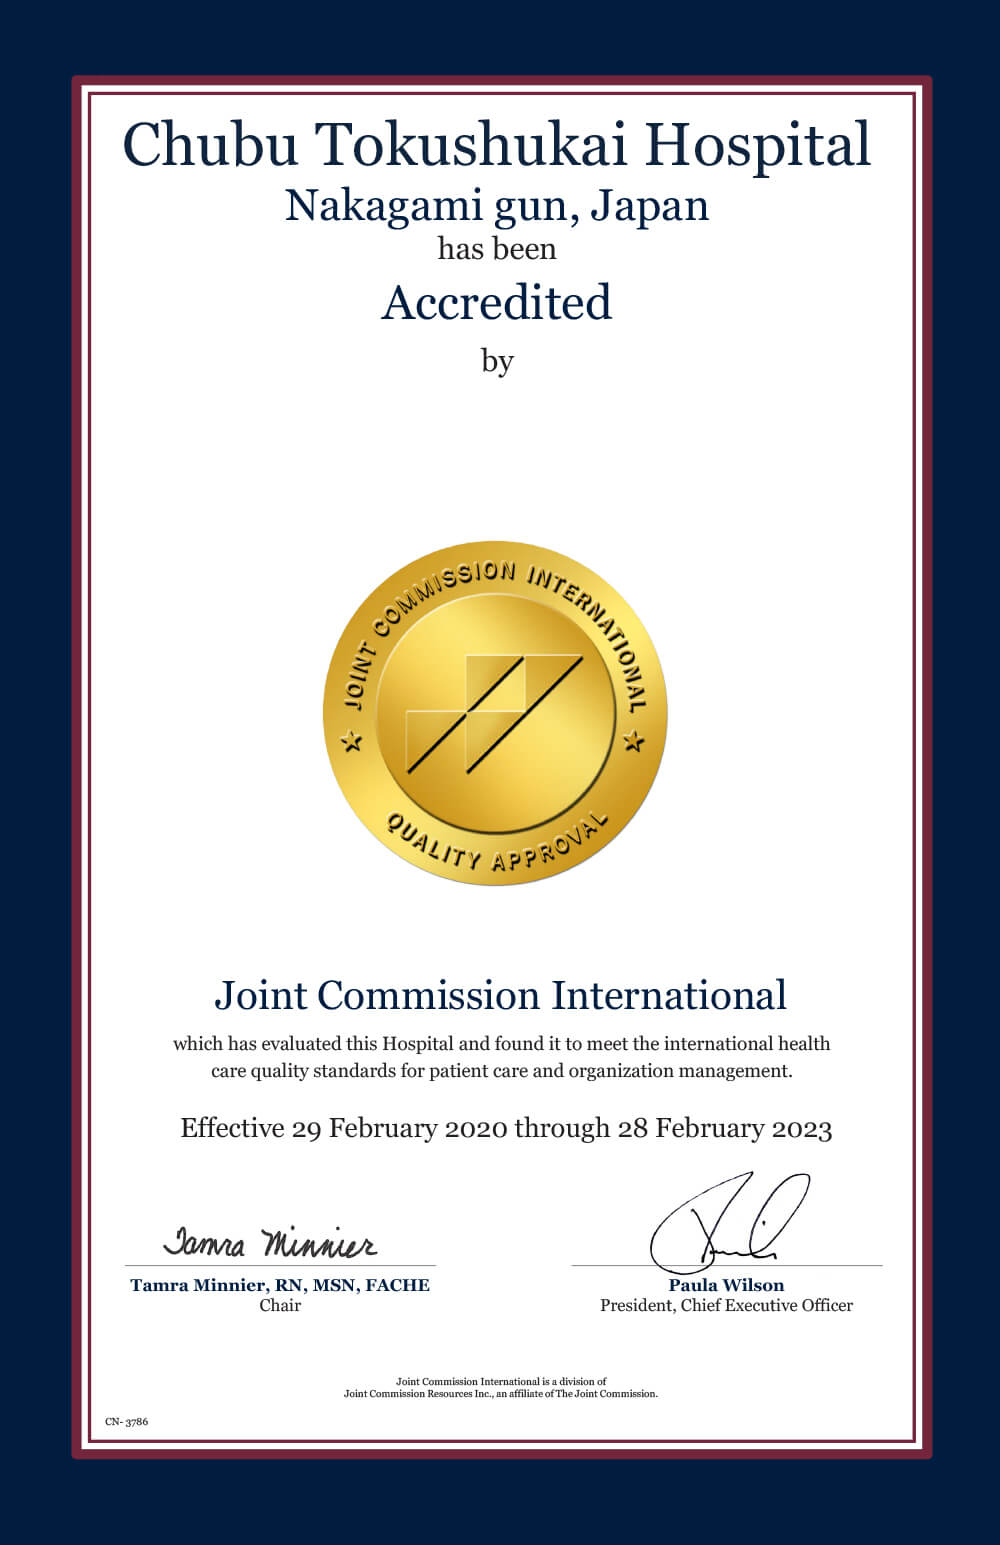 Accredited by JCI